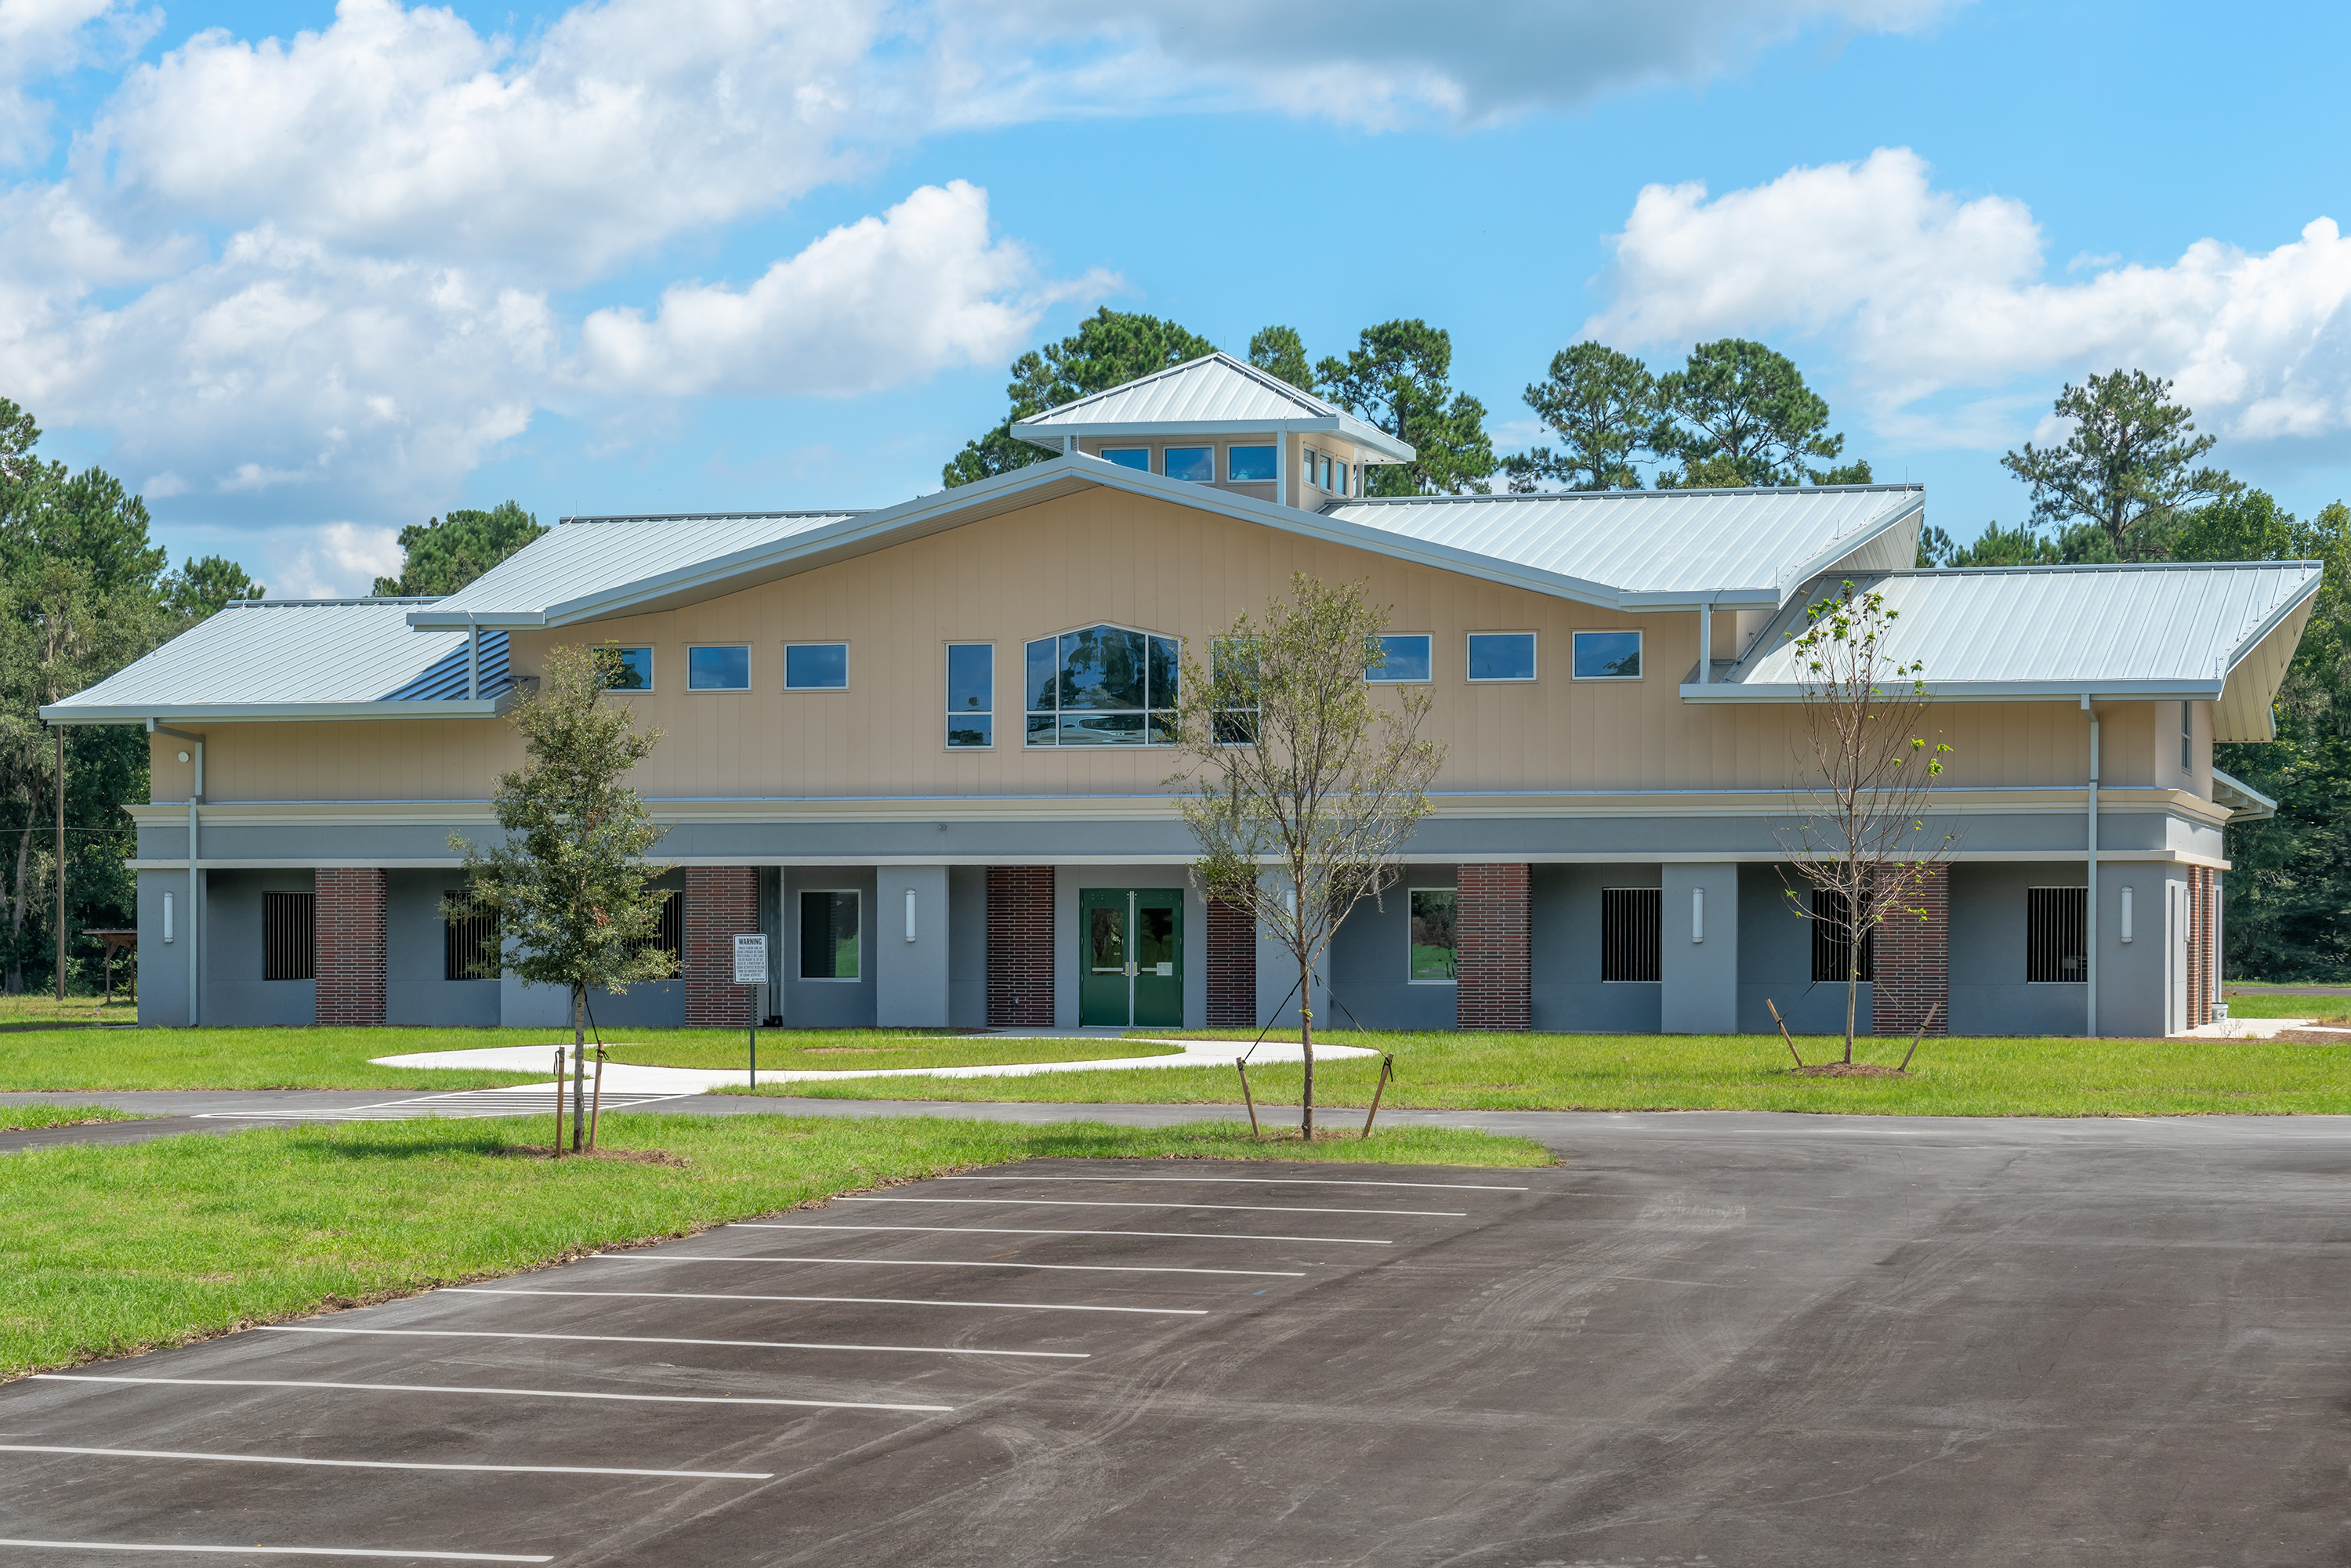 External view of the new UF Equine Acupuncture Center